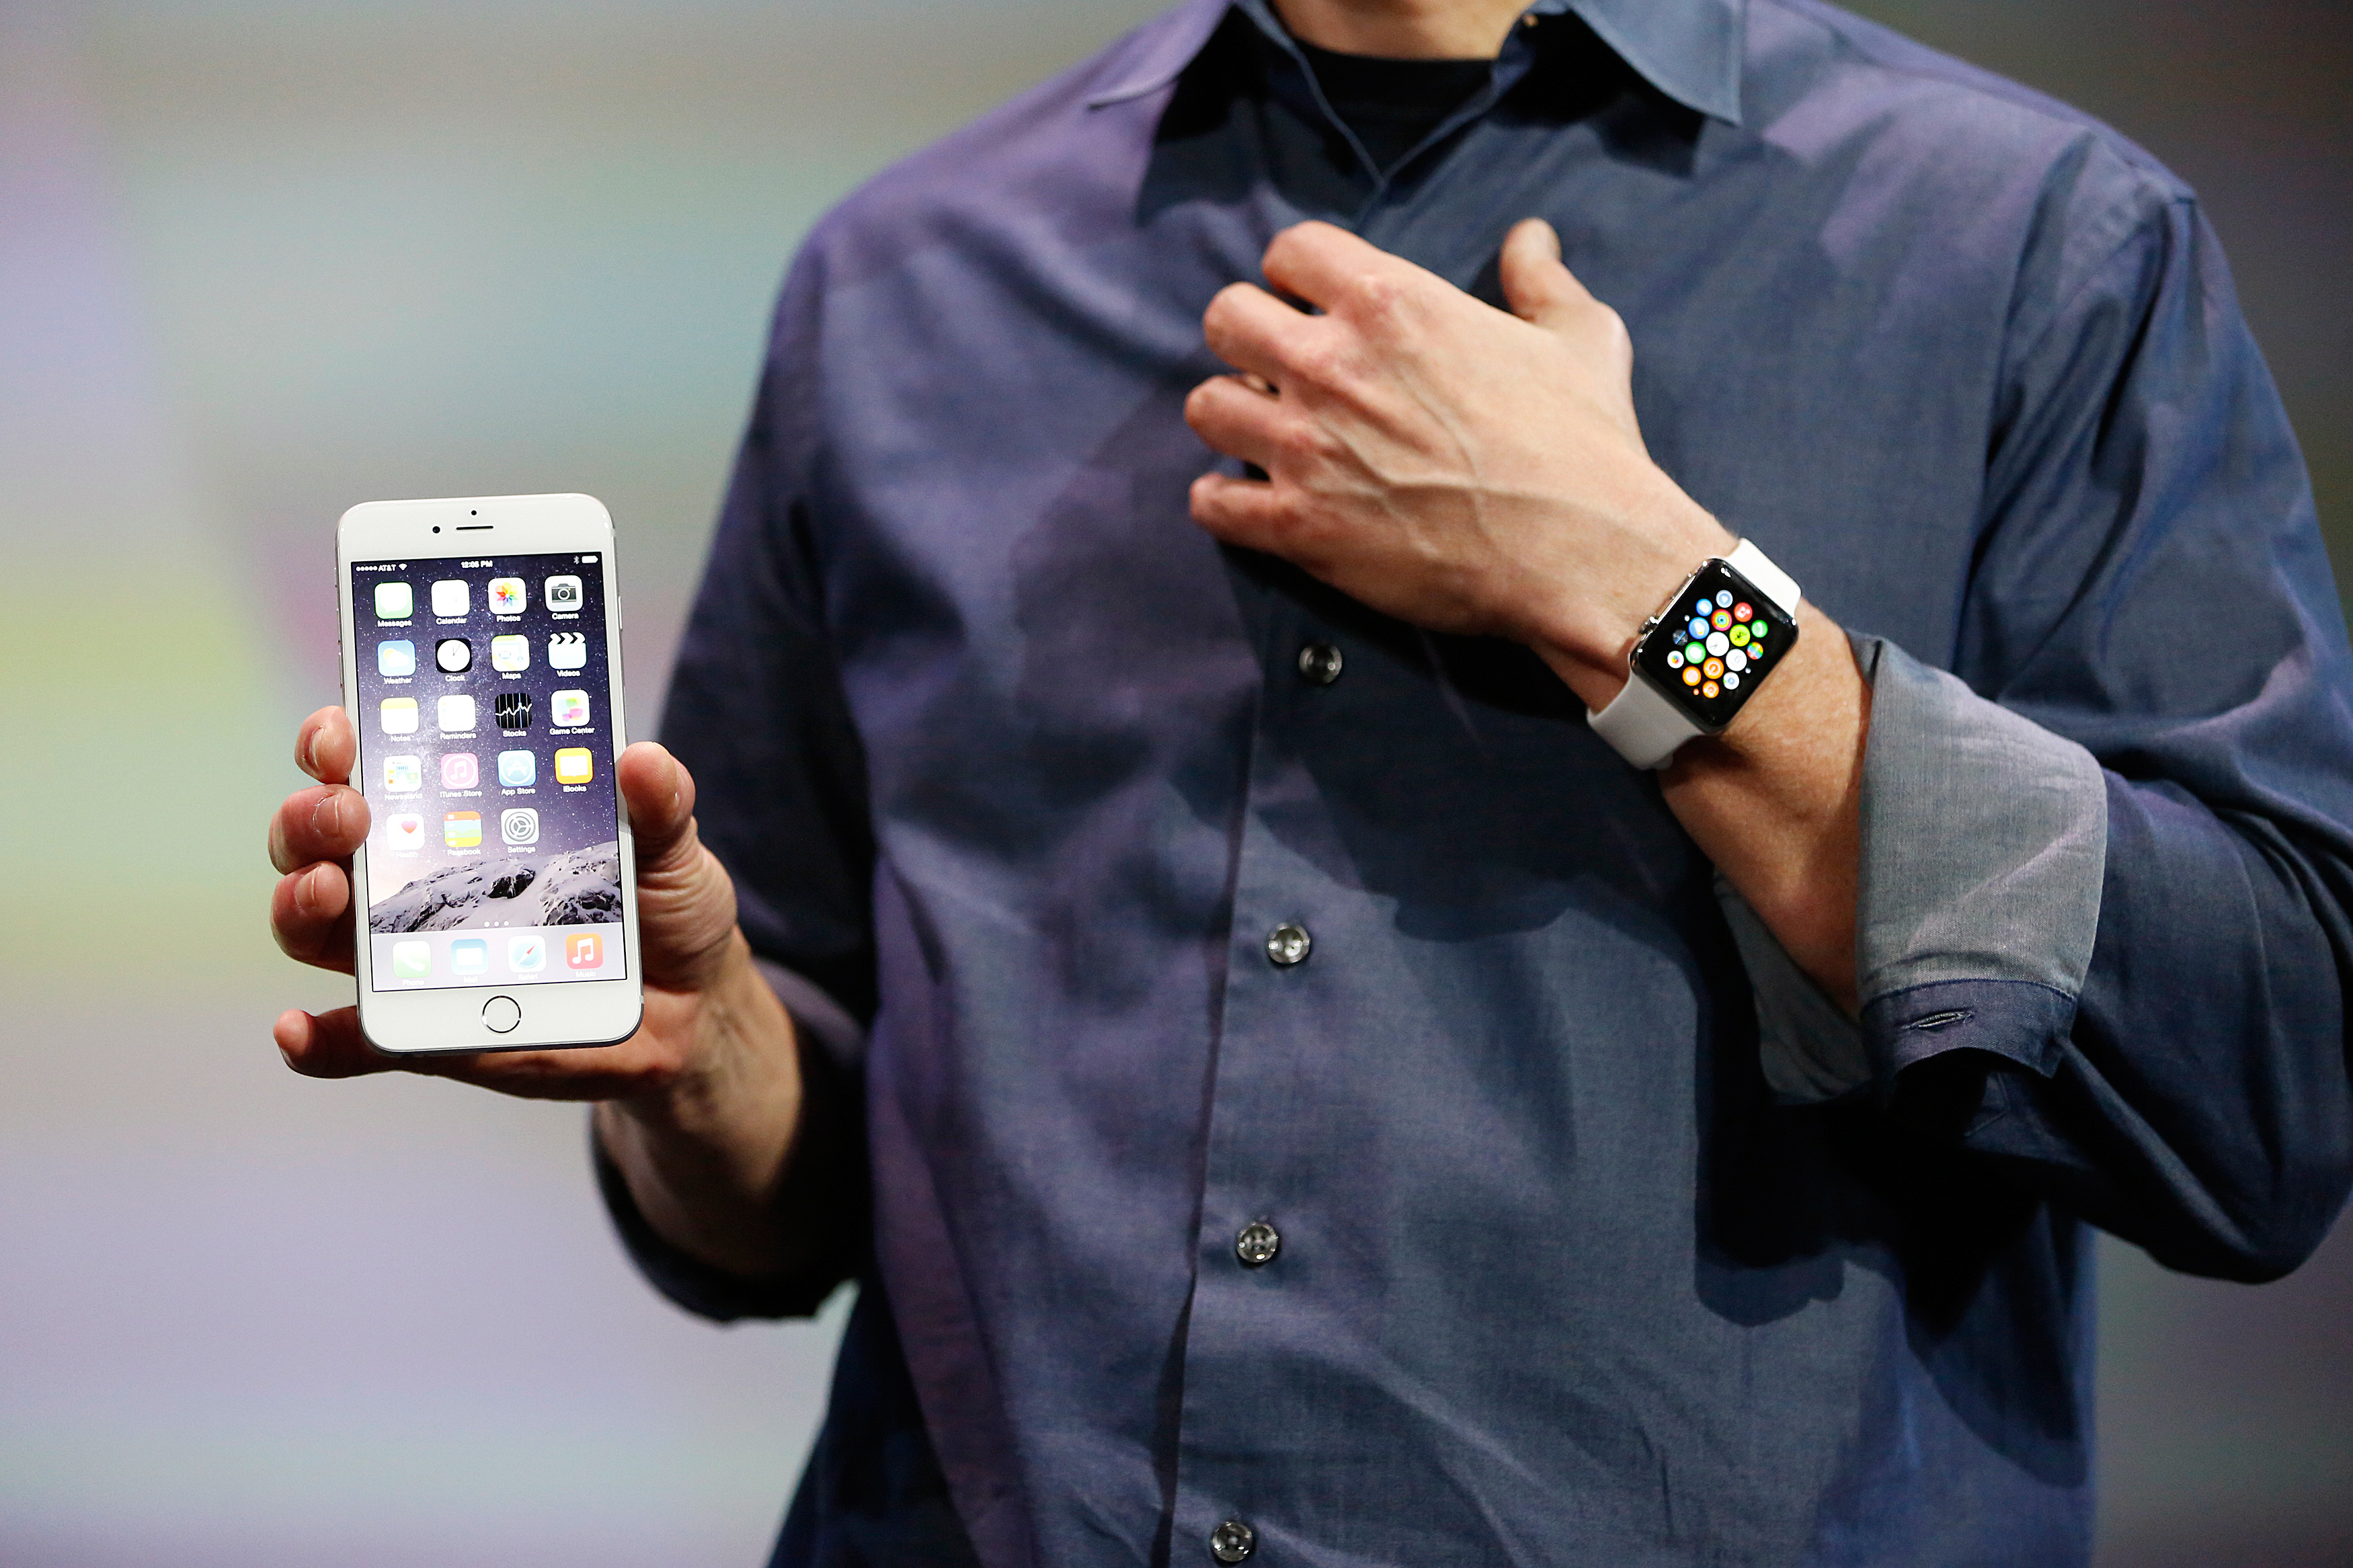 Apple CEO Tim Cook wears the Apple Watch and shows the iPhone 6 Plus during an Apple event at the Flint Center in Cupertino, California, September 9, 2014.